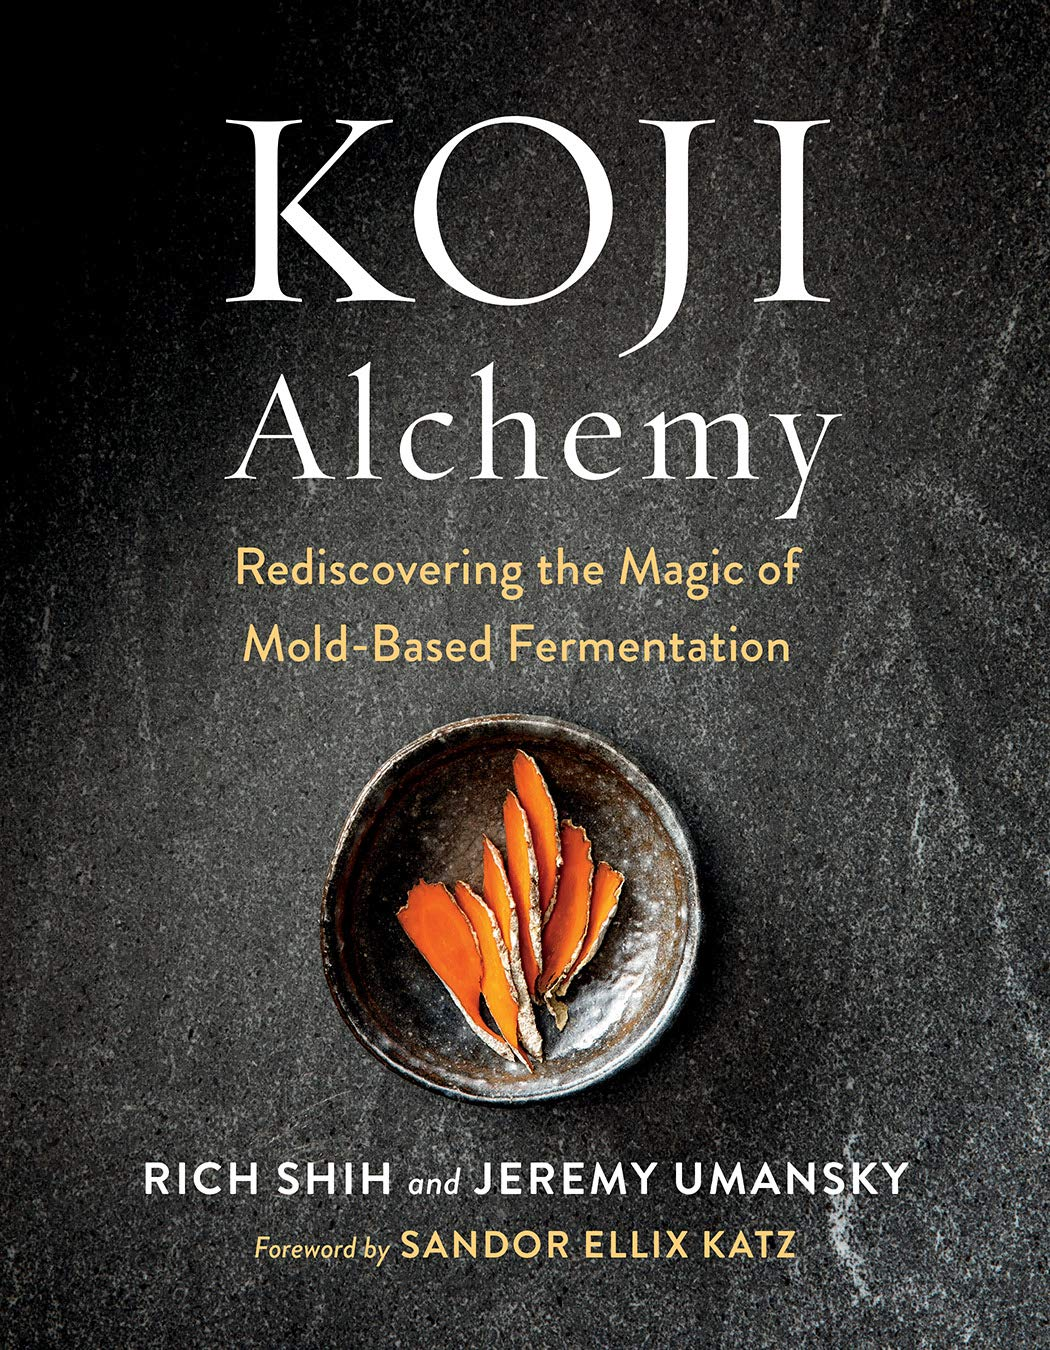 (Fermentation) Jeremy Umansky. Koji Alchemy: Rediscovering the Magic of Mold-Based Fermentation.